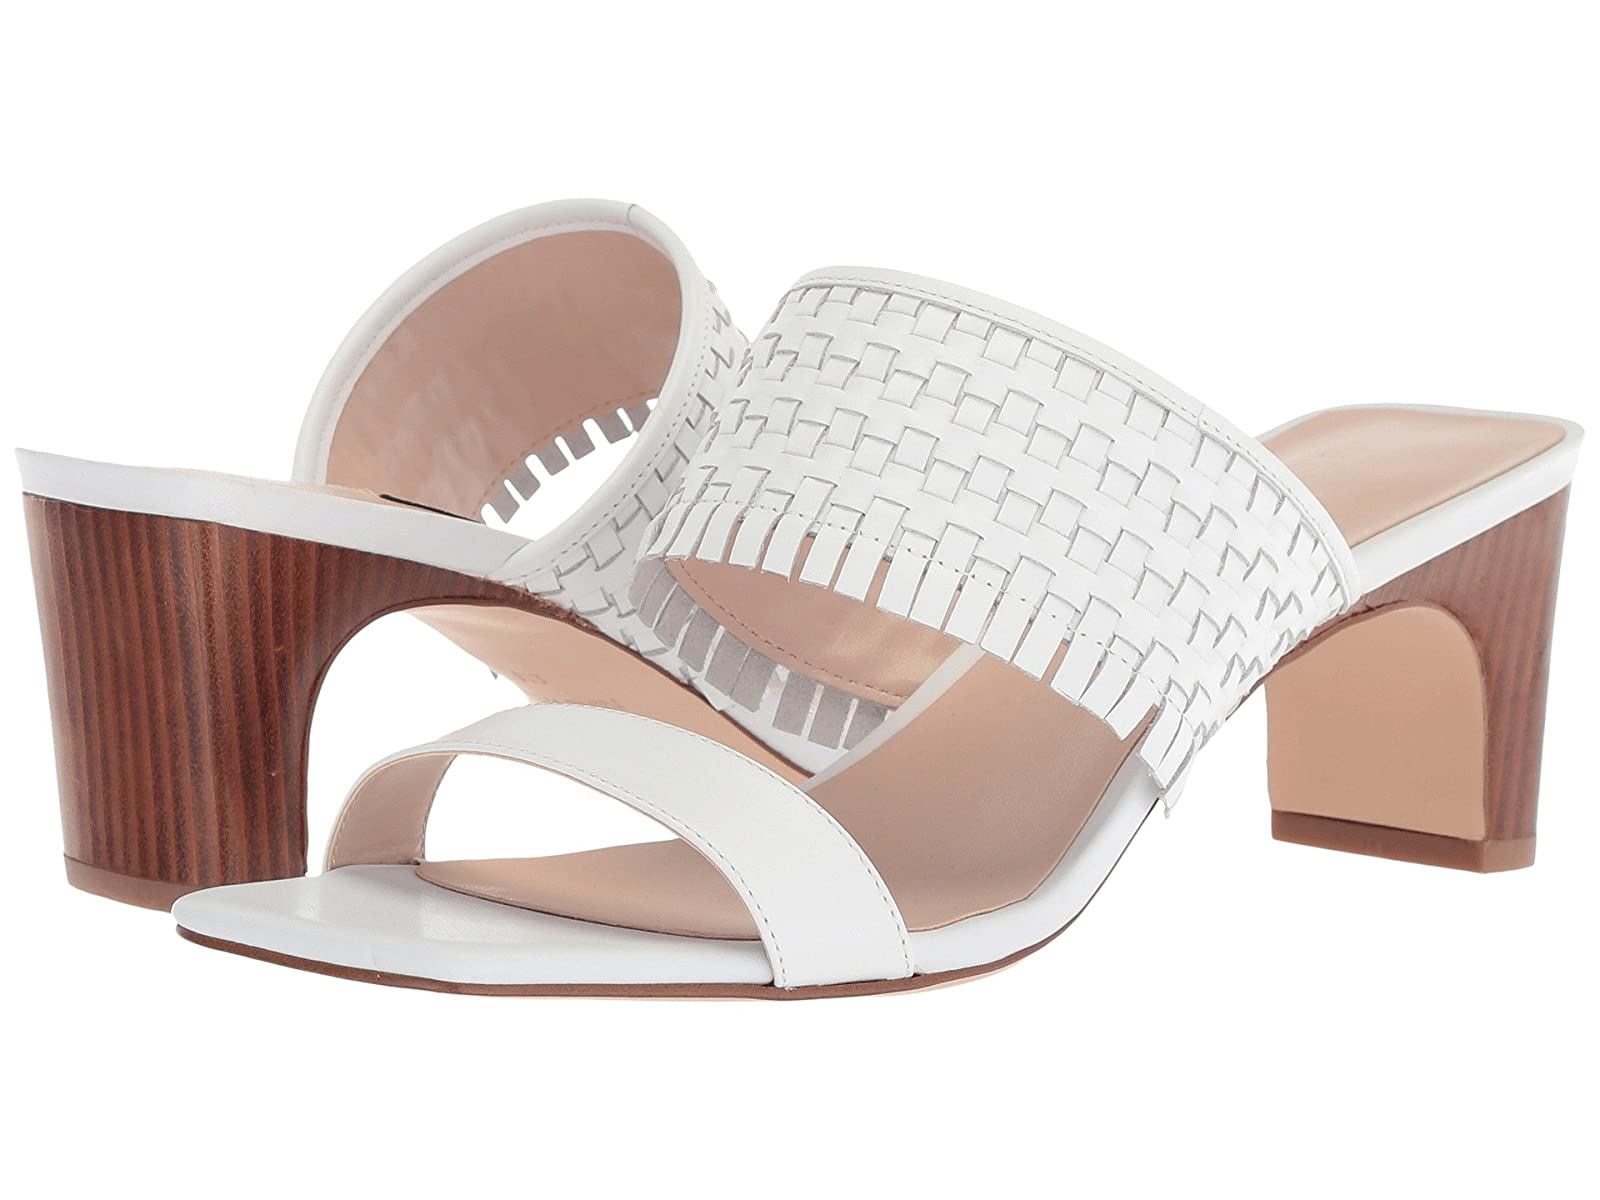 Nine West Nirveli Slide SandalCheap and distinctive eye-catching shoes